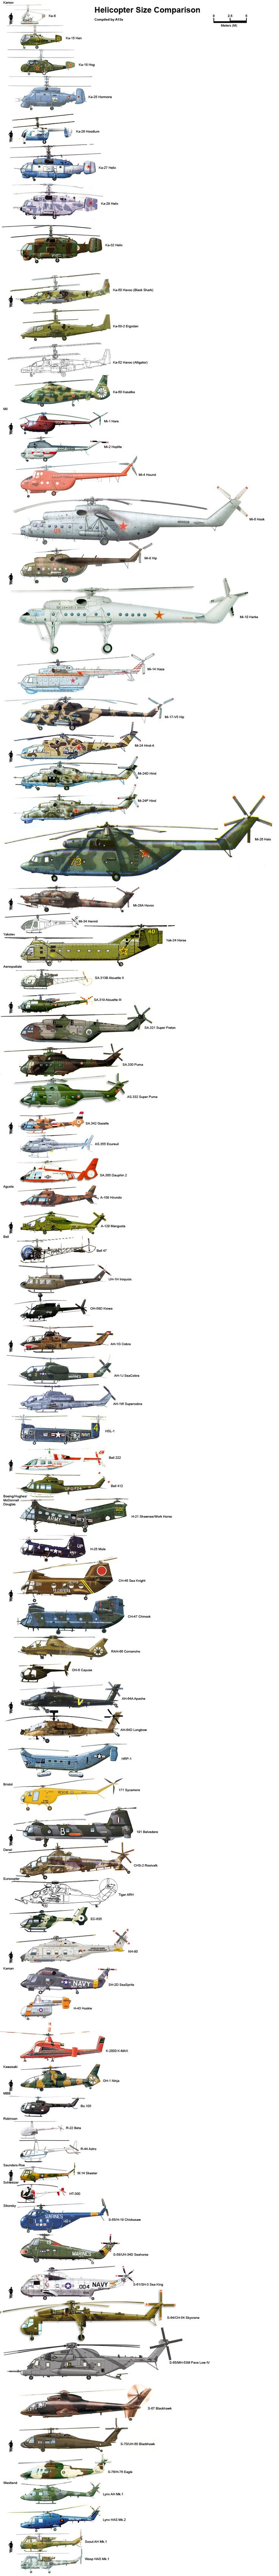 comparaison-taille-helicoptere.jpg (839×7752)